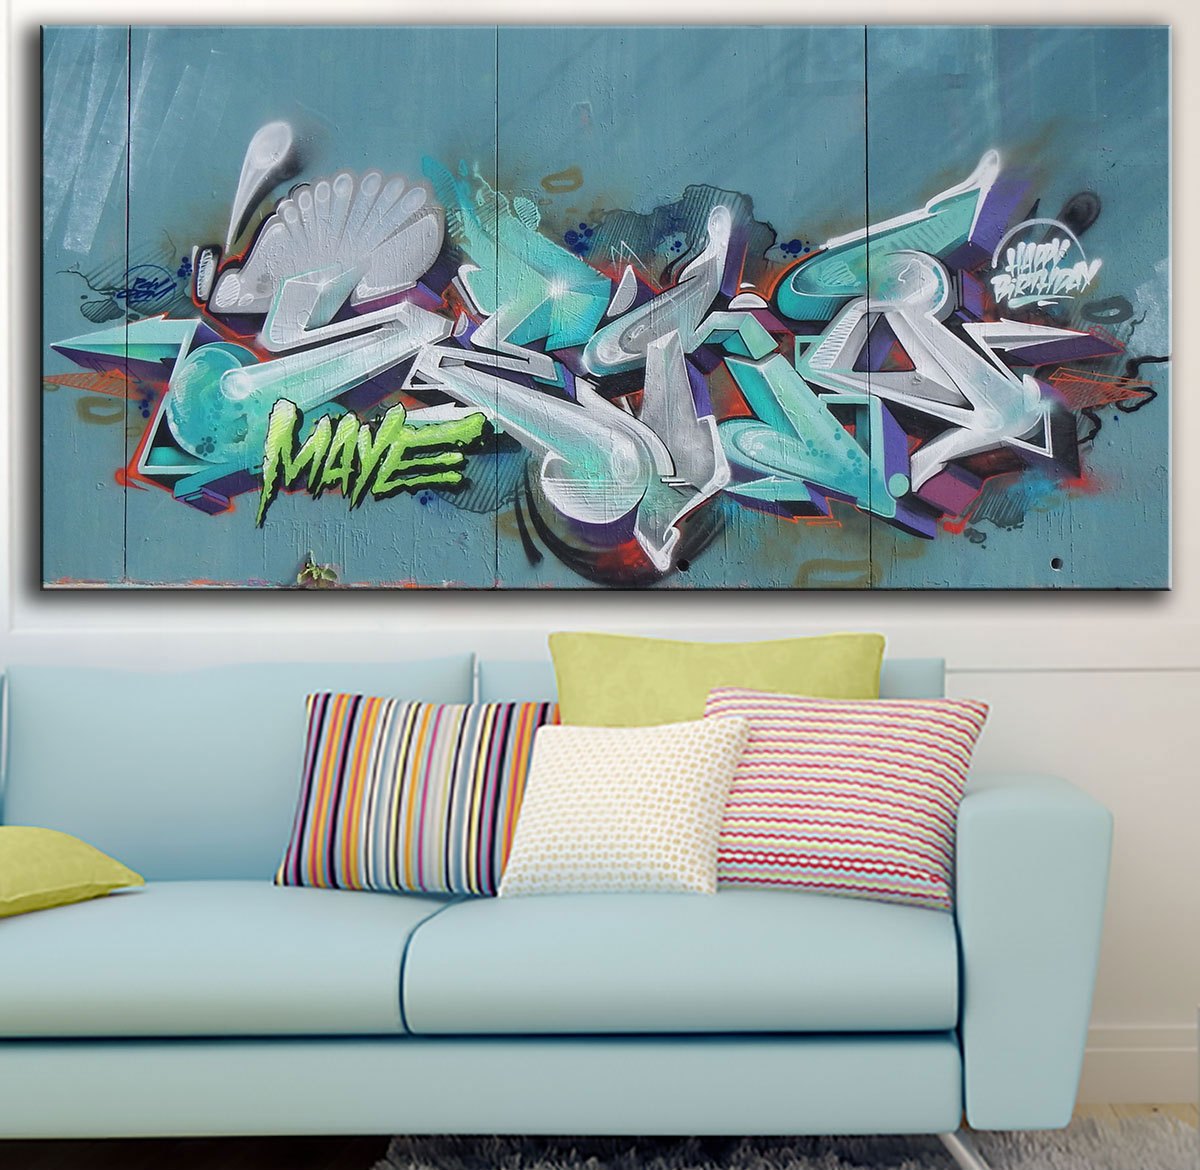 Large size Printing Oil Painting maye Graffiti art Wall painting Abstract Art Picture For Living Room painting No Frame(China (Mainland))